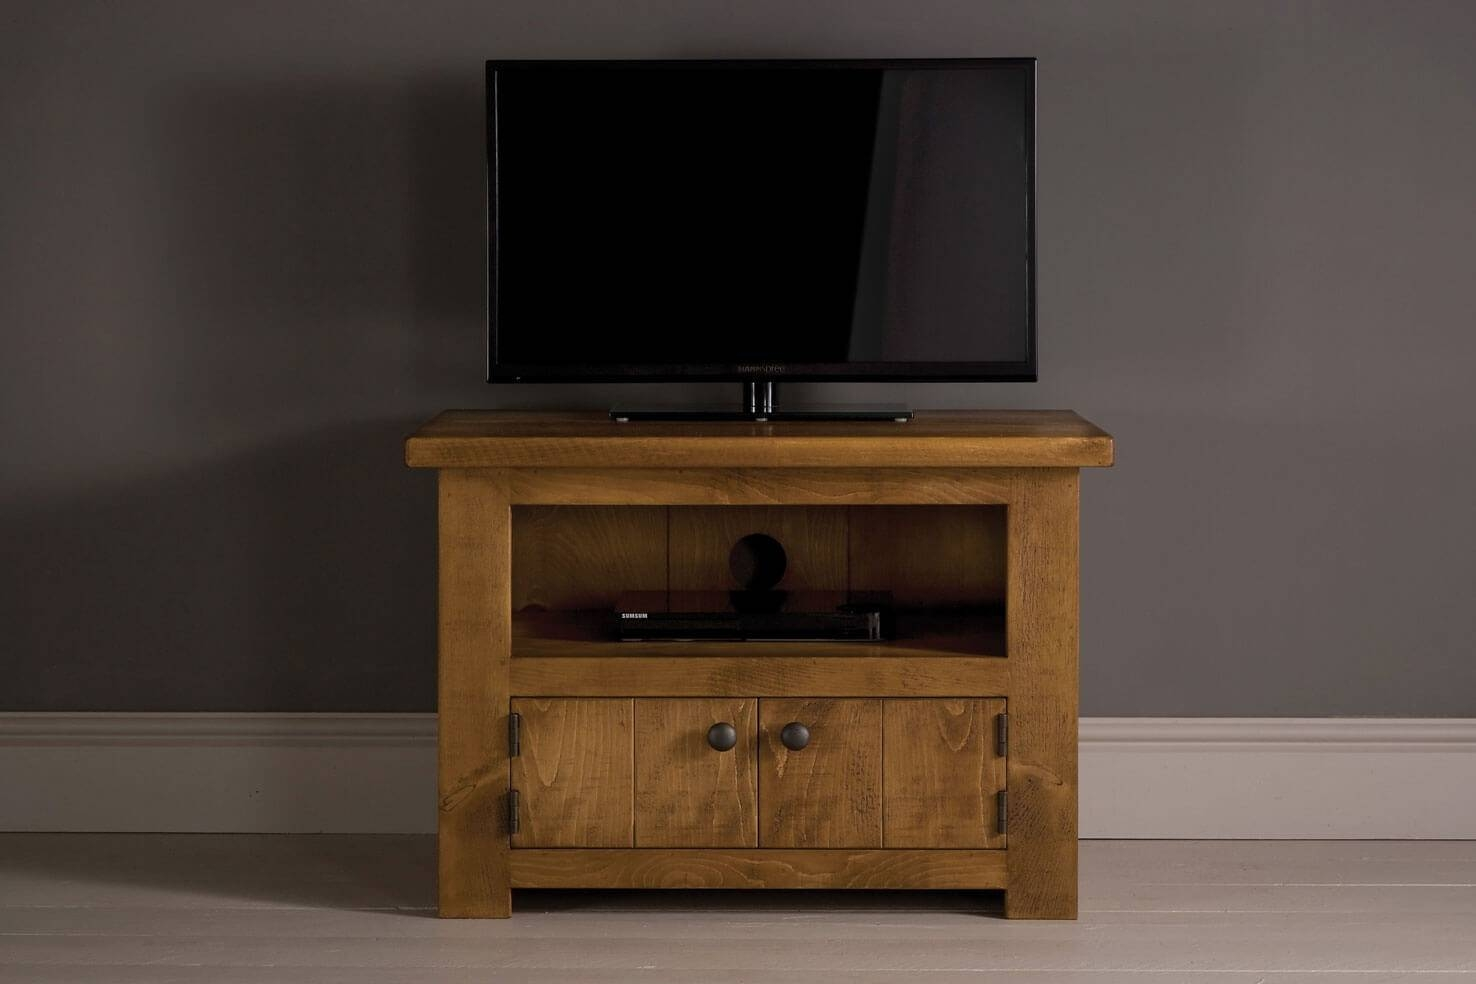 Midi Plank Tv Cabinet With Doorsindigo Furniture Regarding Small Tv Cabinets (View 11 of 15)